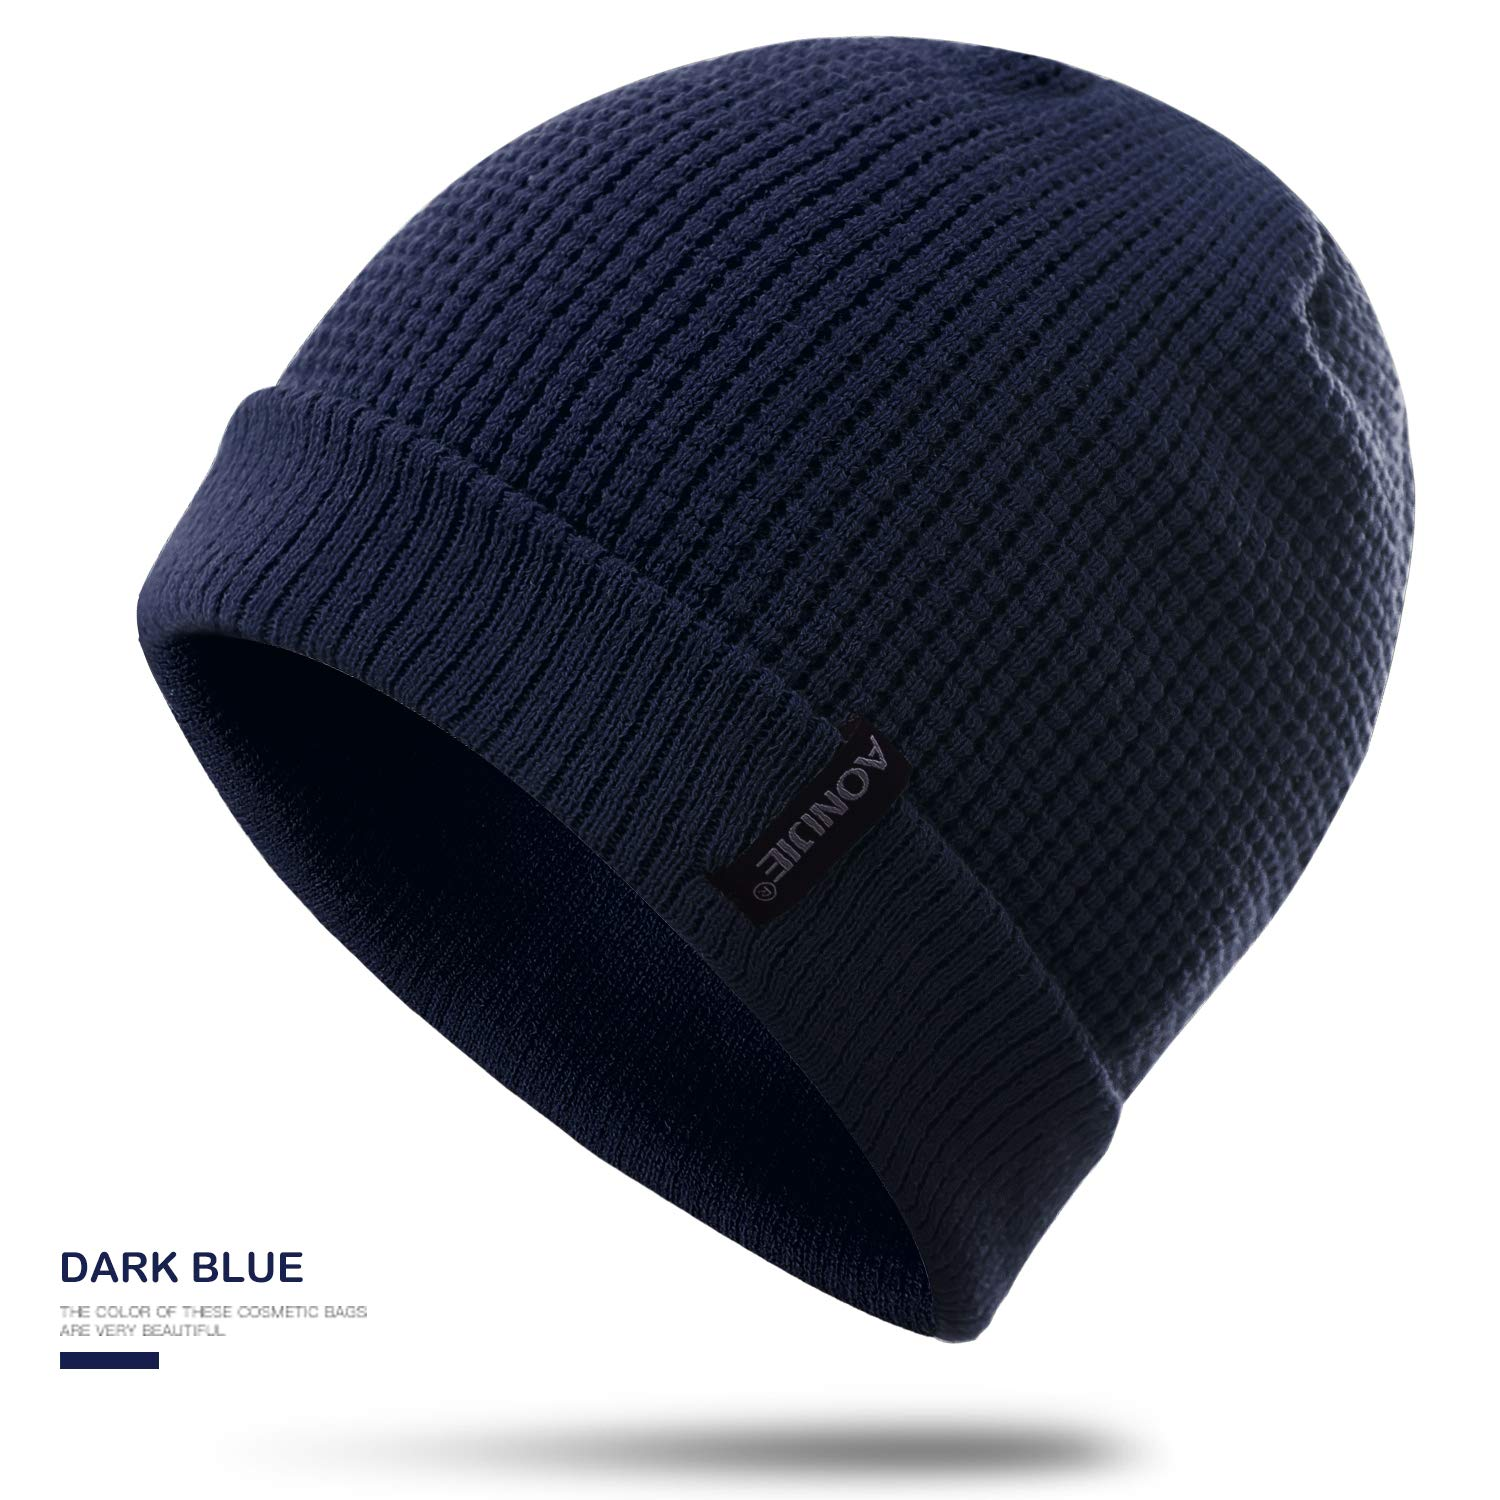 84659c4361c02 Best Rated in Men s Cycling Caps   Helpful Customer Reviews - Amazon.com